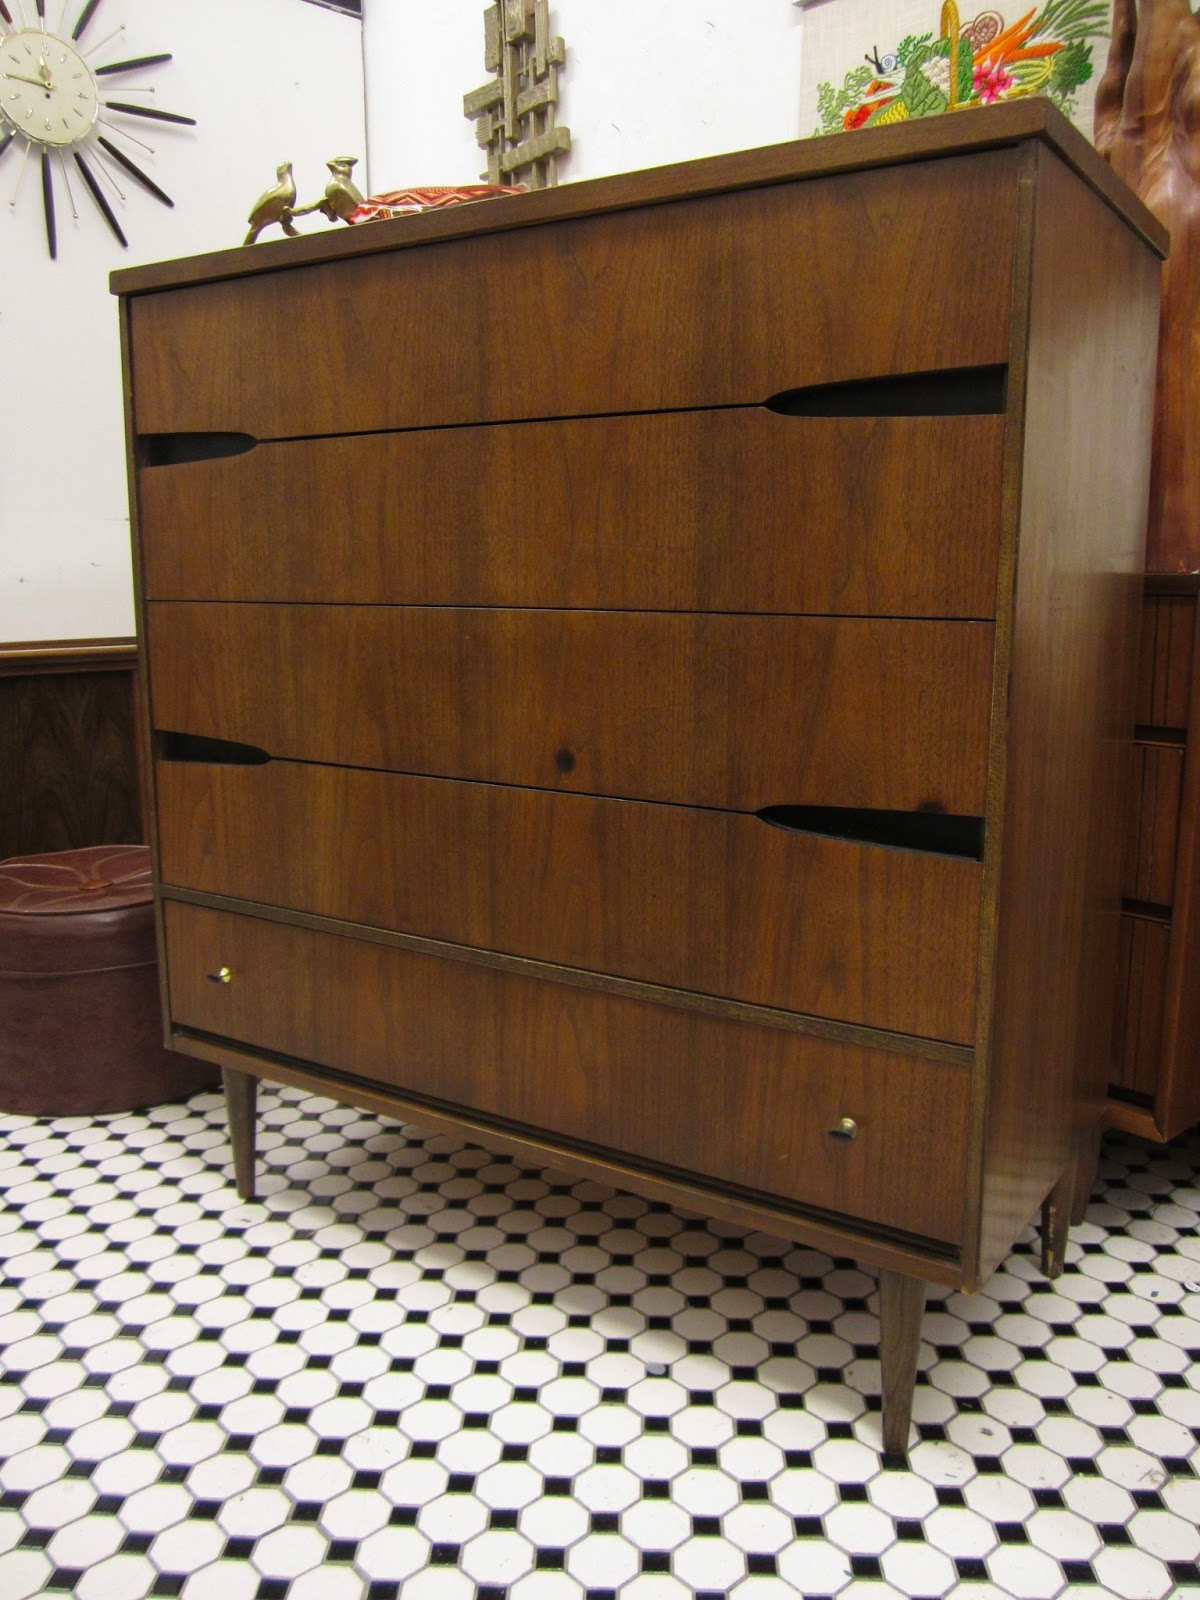 SOLD Vintage Mid Century High Boy Dresser By Bassett Furniture $240